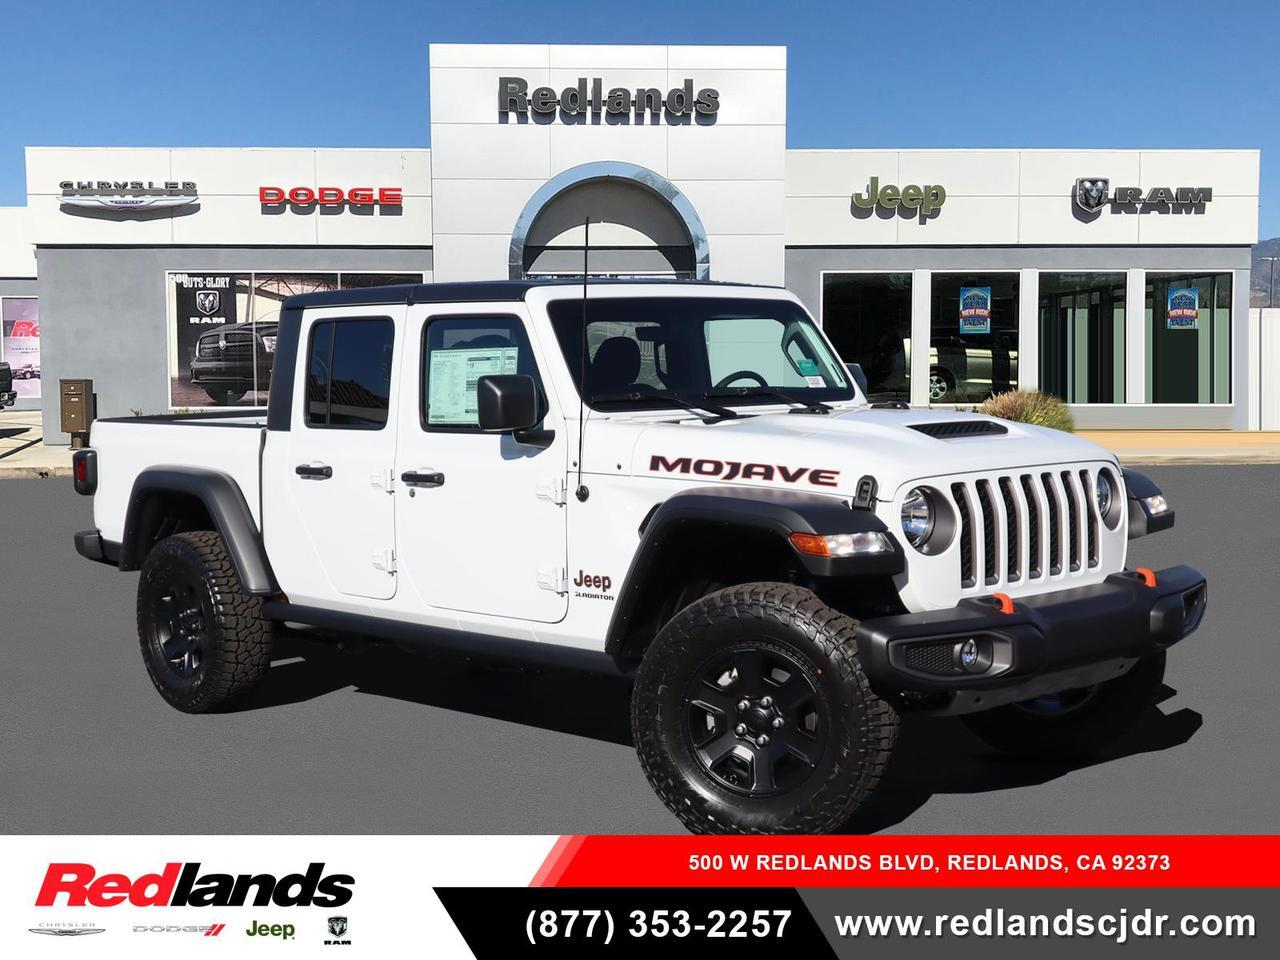 2021 Jeep Gladiator MOJAVE 4X4 Redlands CA